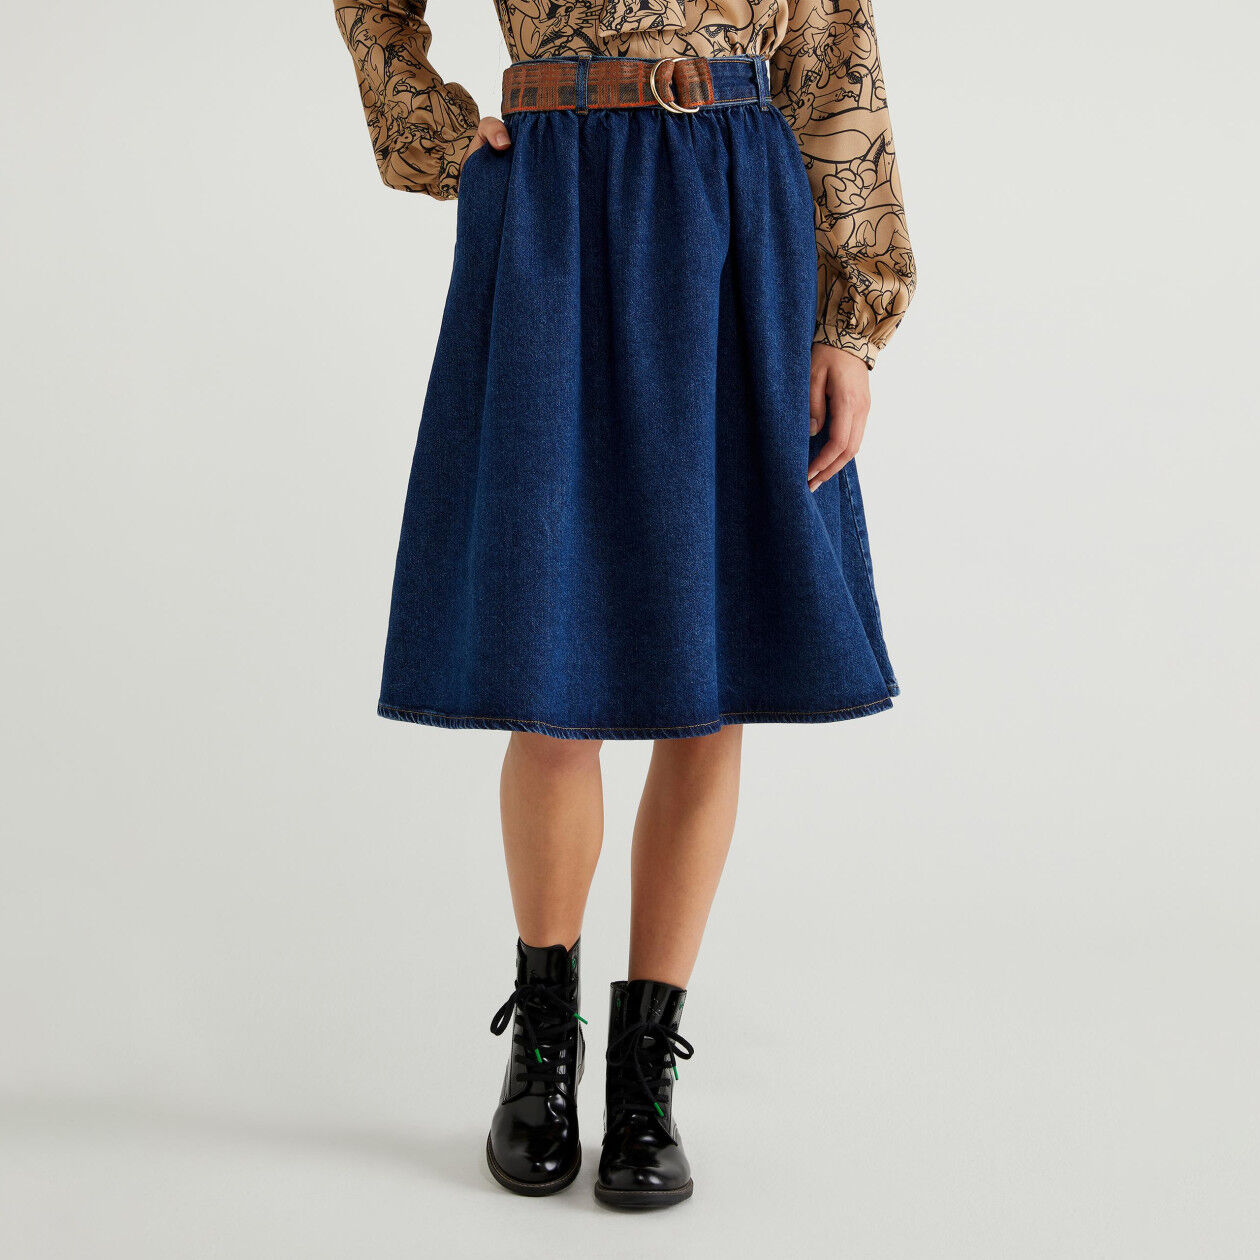 Jean skirt with belt